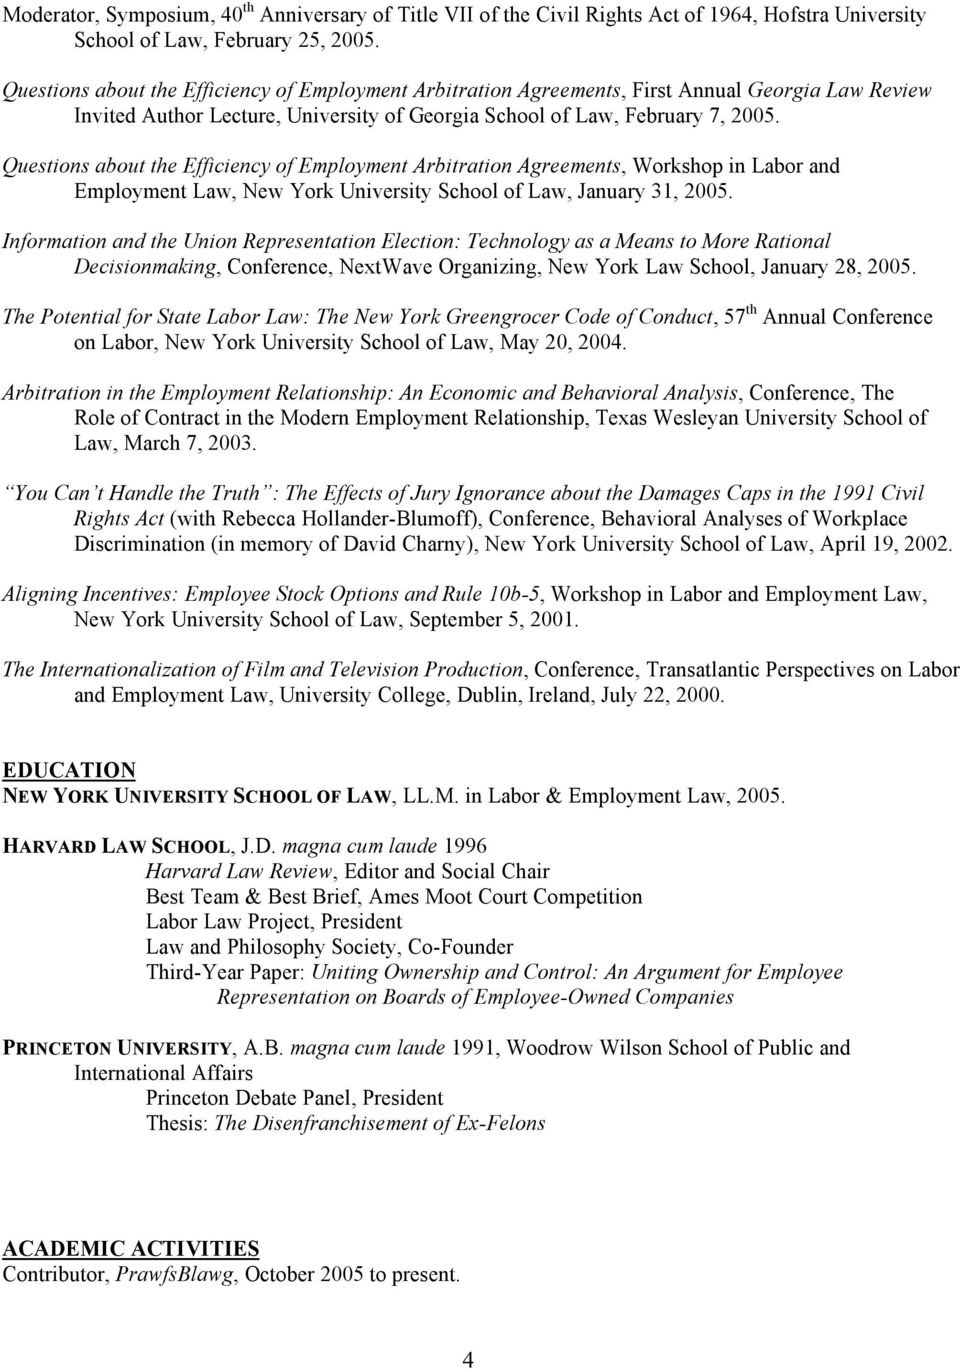 Questions about the Efficiency of Employment Arbitration Agreements, Workshop in Labor and Employment Law, New York University School of Law, January 31, 2005.